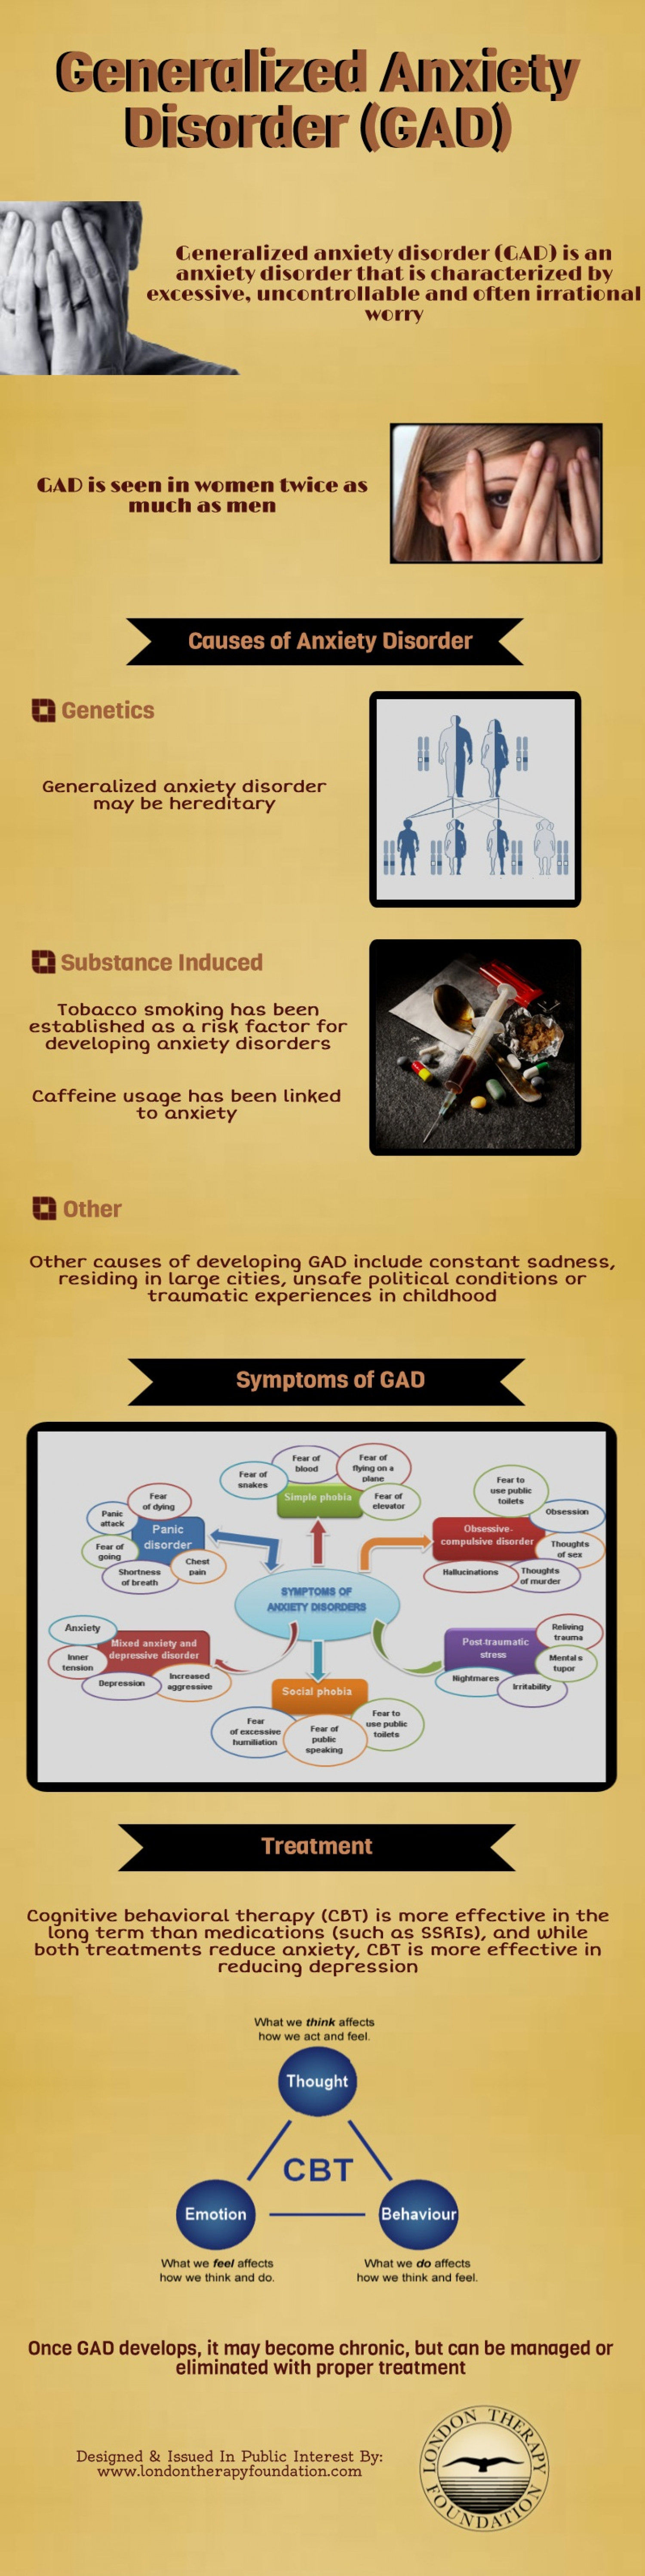 Generalized Anxiety Disorder (GAD) Infographic